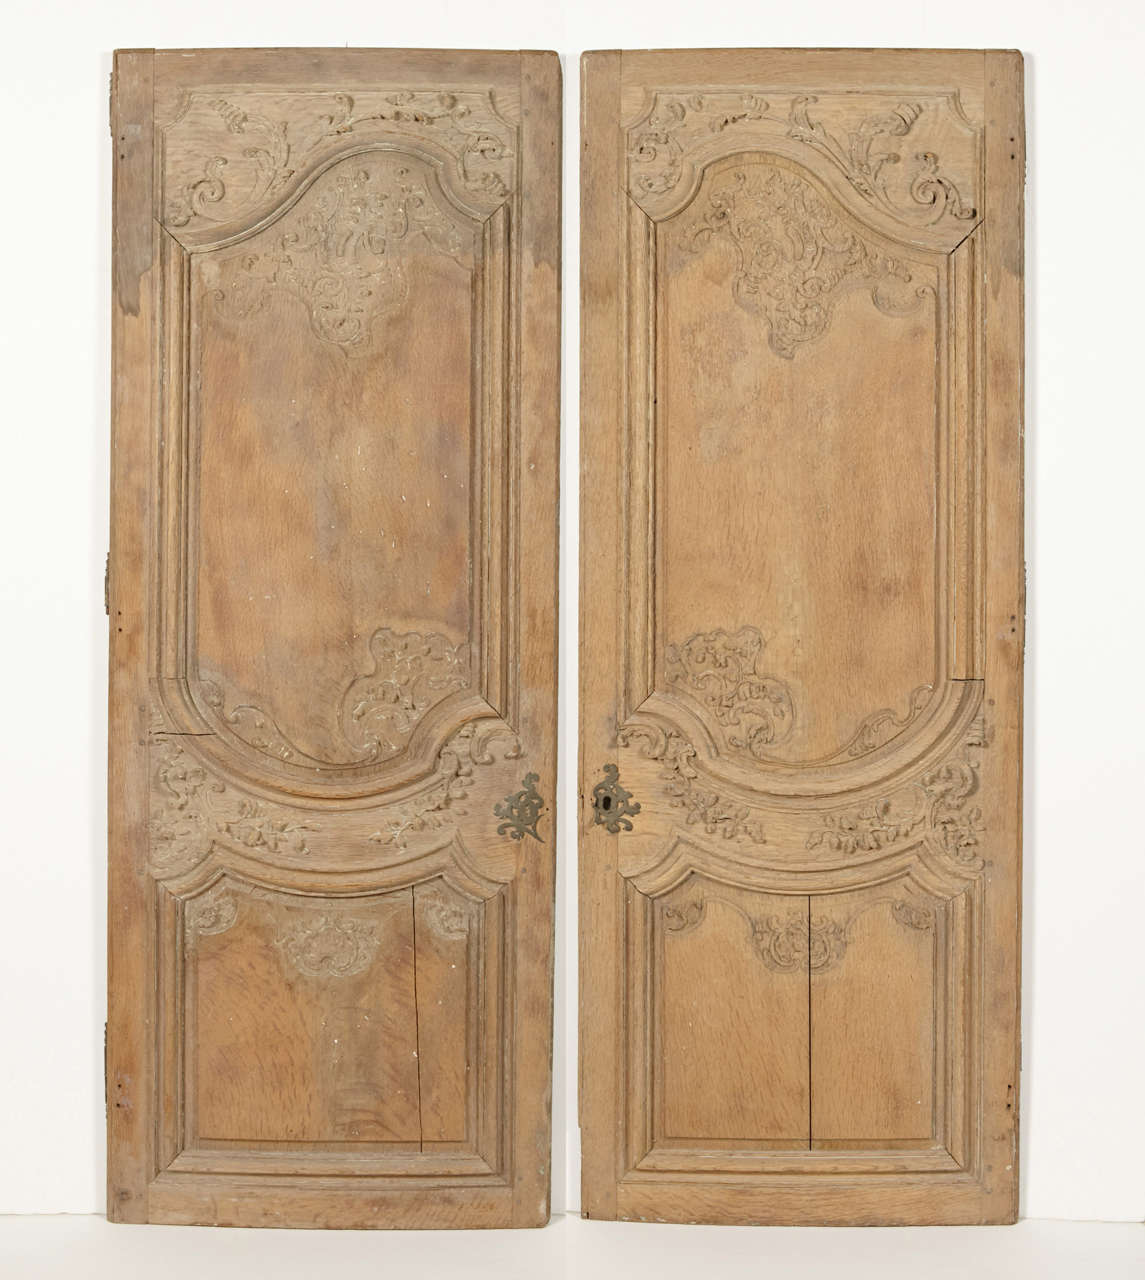 These beautifully hand-carved armoire doors are from the French Regence period (1715-1723). The front sides have been stripped at some point in their history, while the backs are painted in a cream color. Each door has a very subtle bow